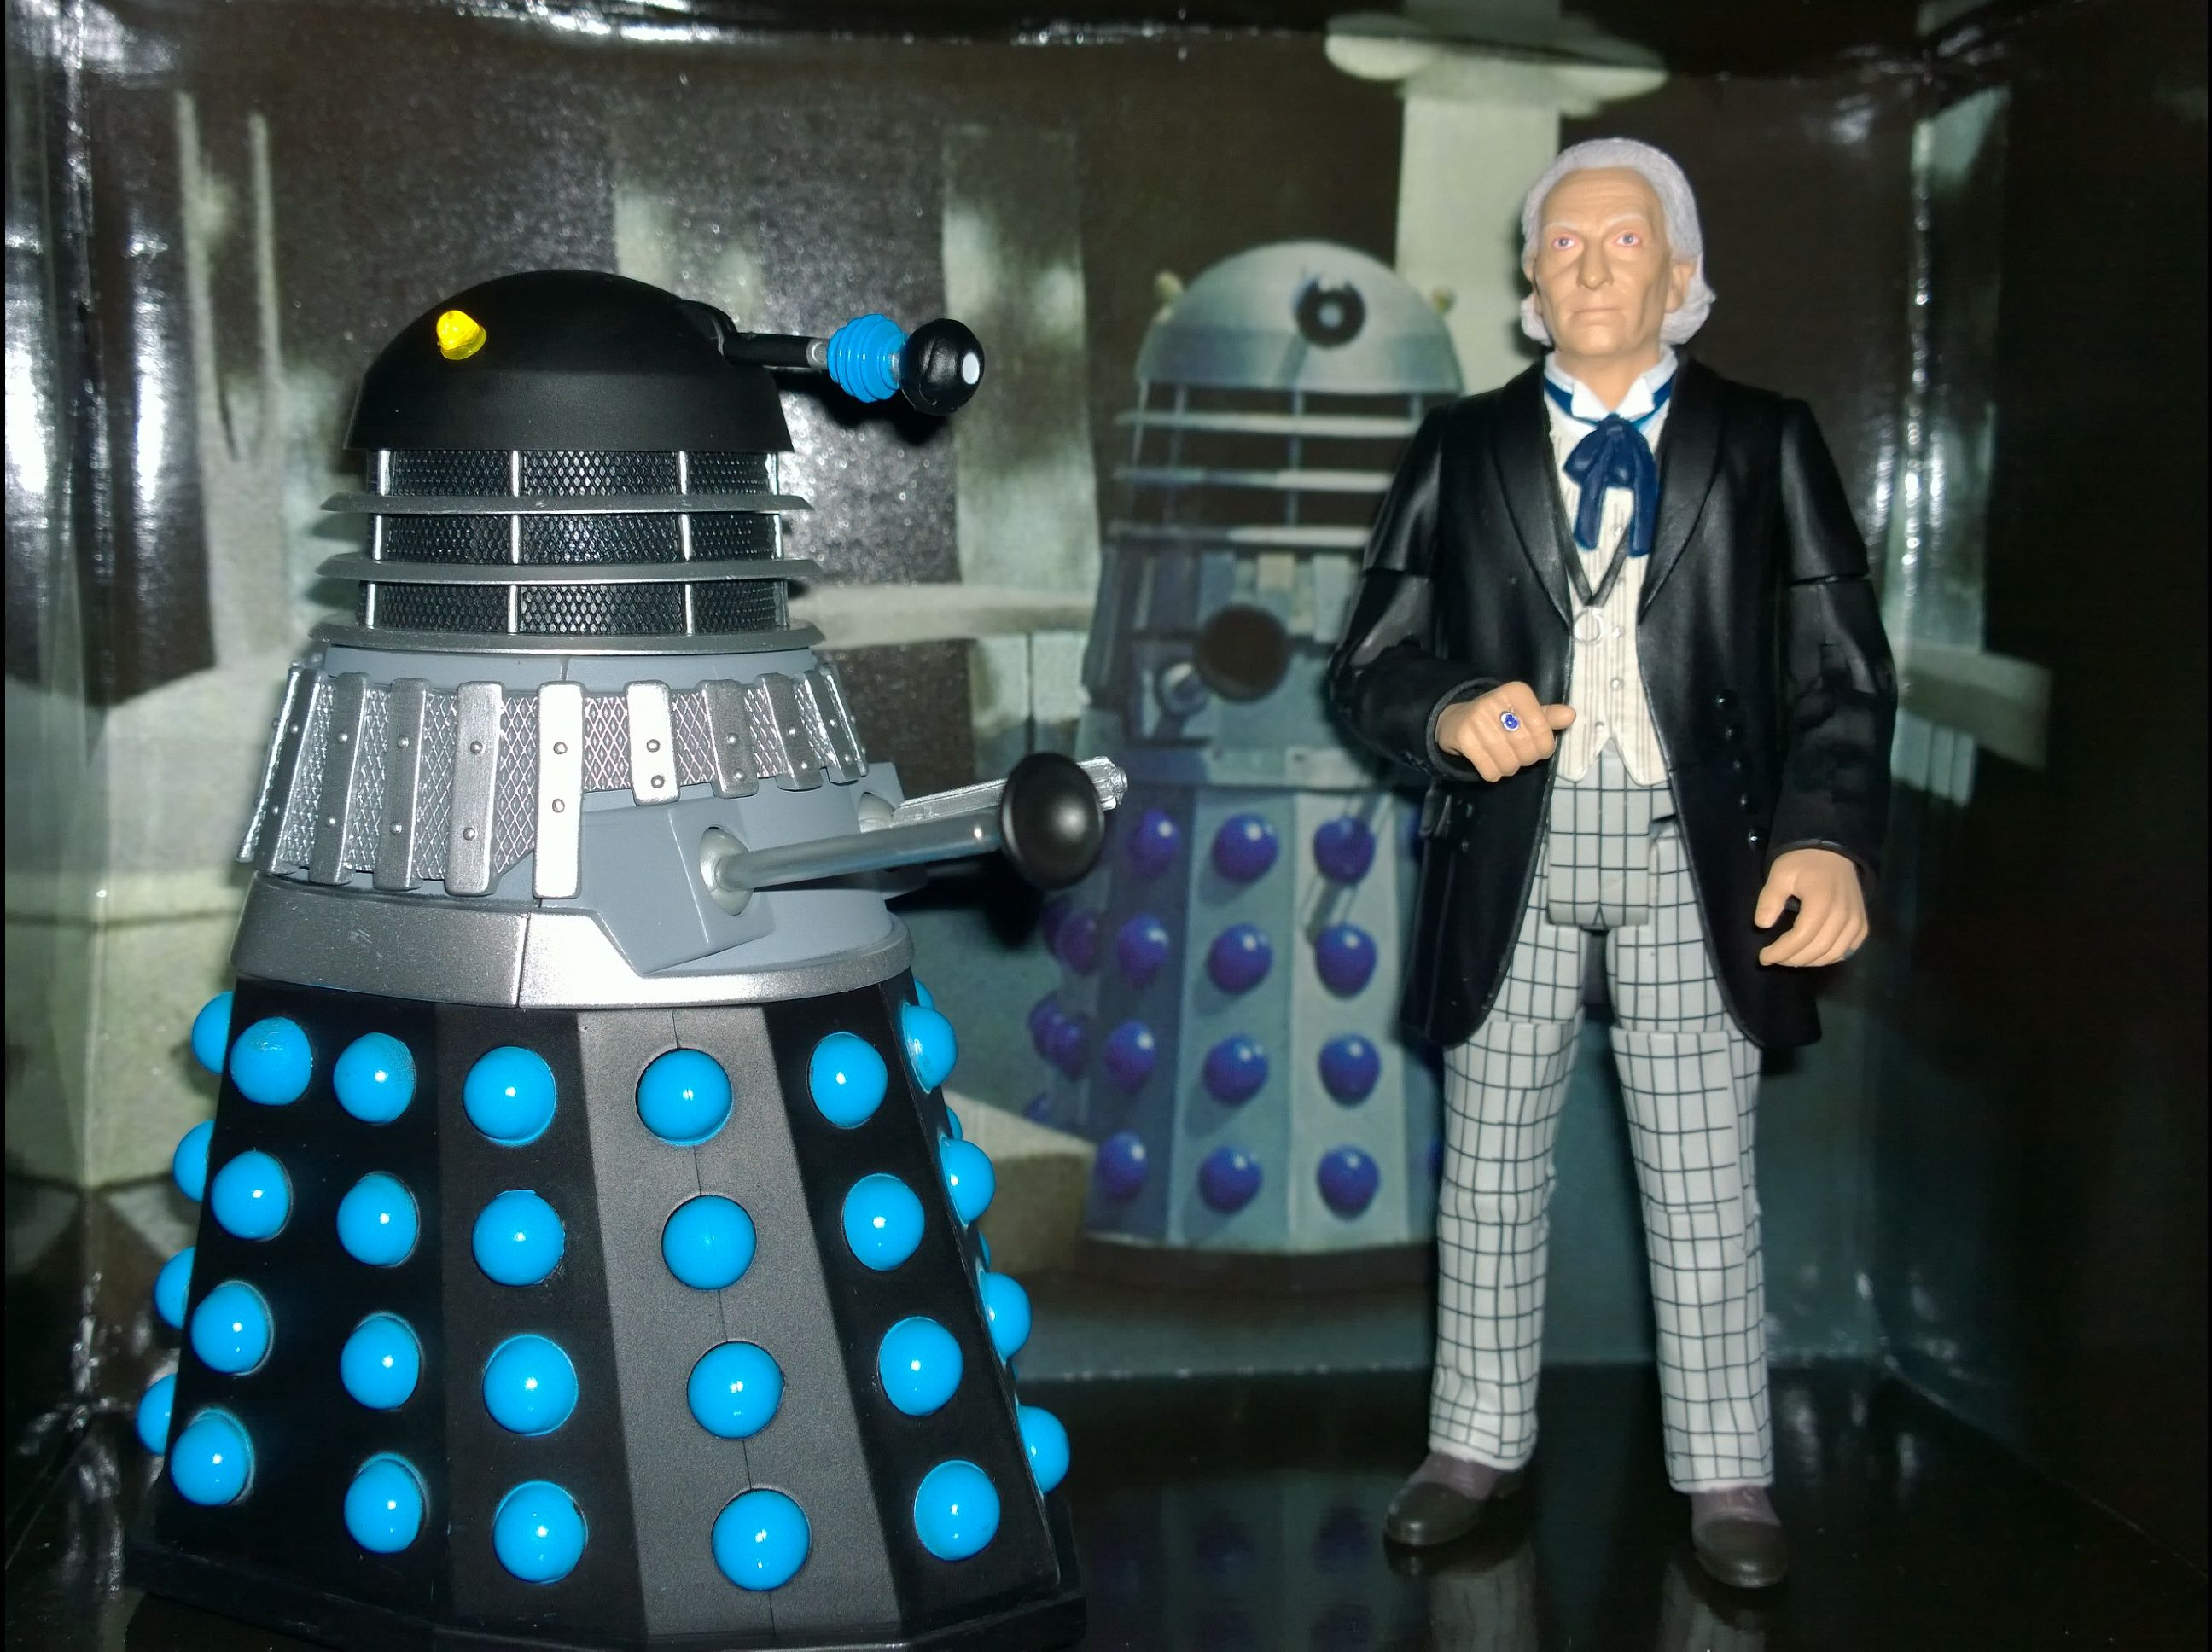 Doctor Who 1st Doctor And Supreme Dalek Action Figure Set From Toys R Us Doctor Who Merchandise Action Figures Doctor Who